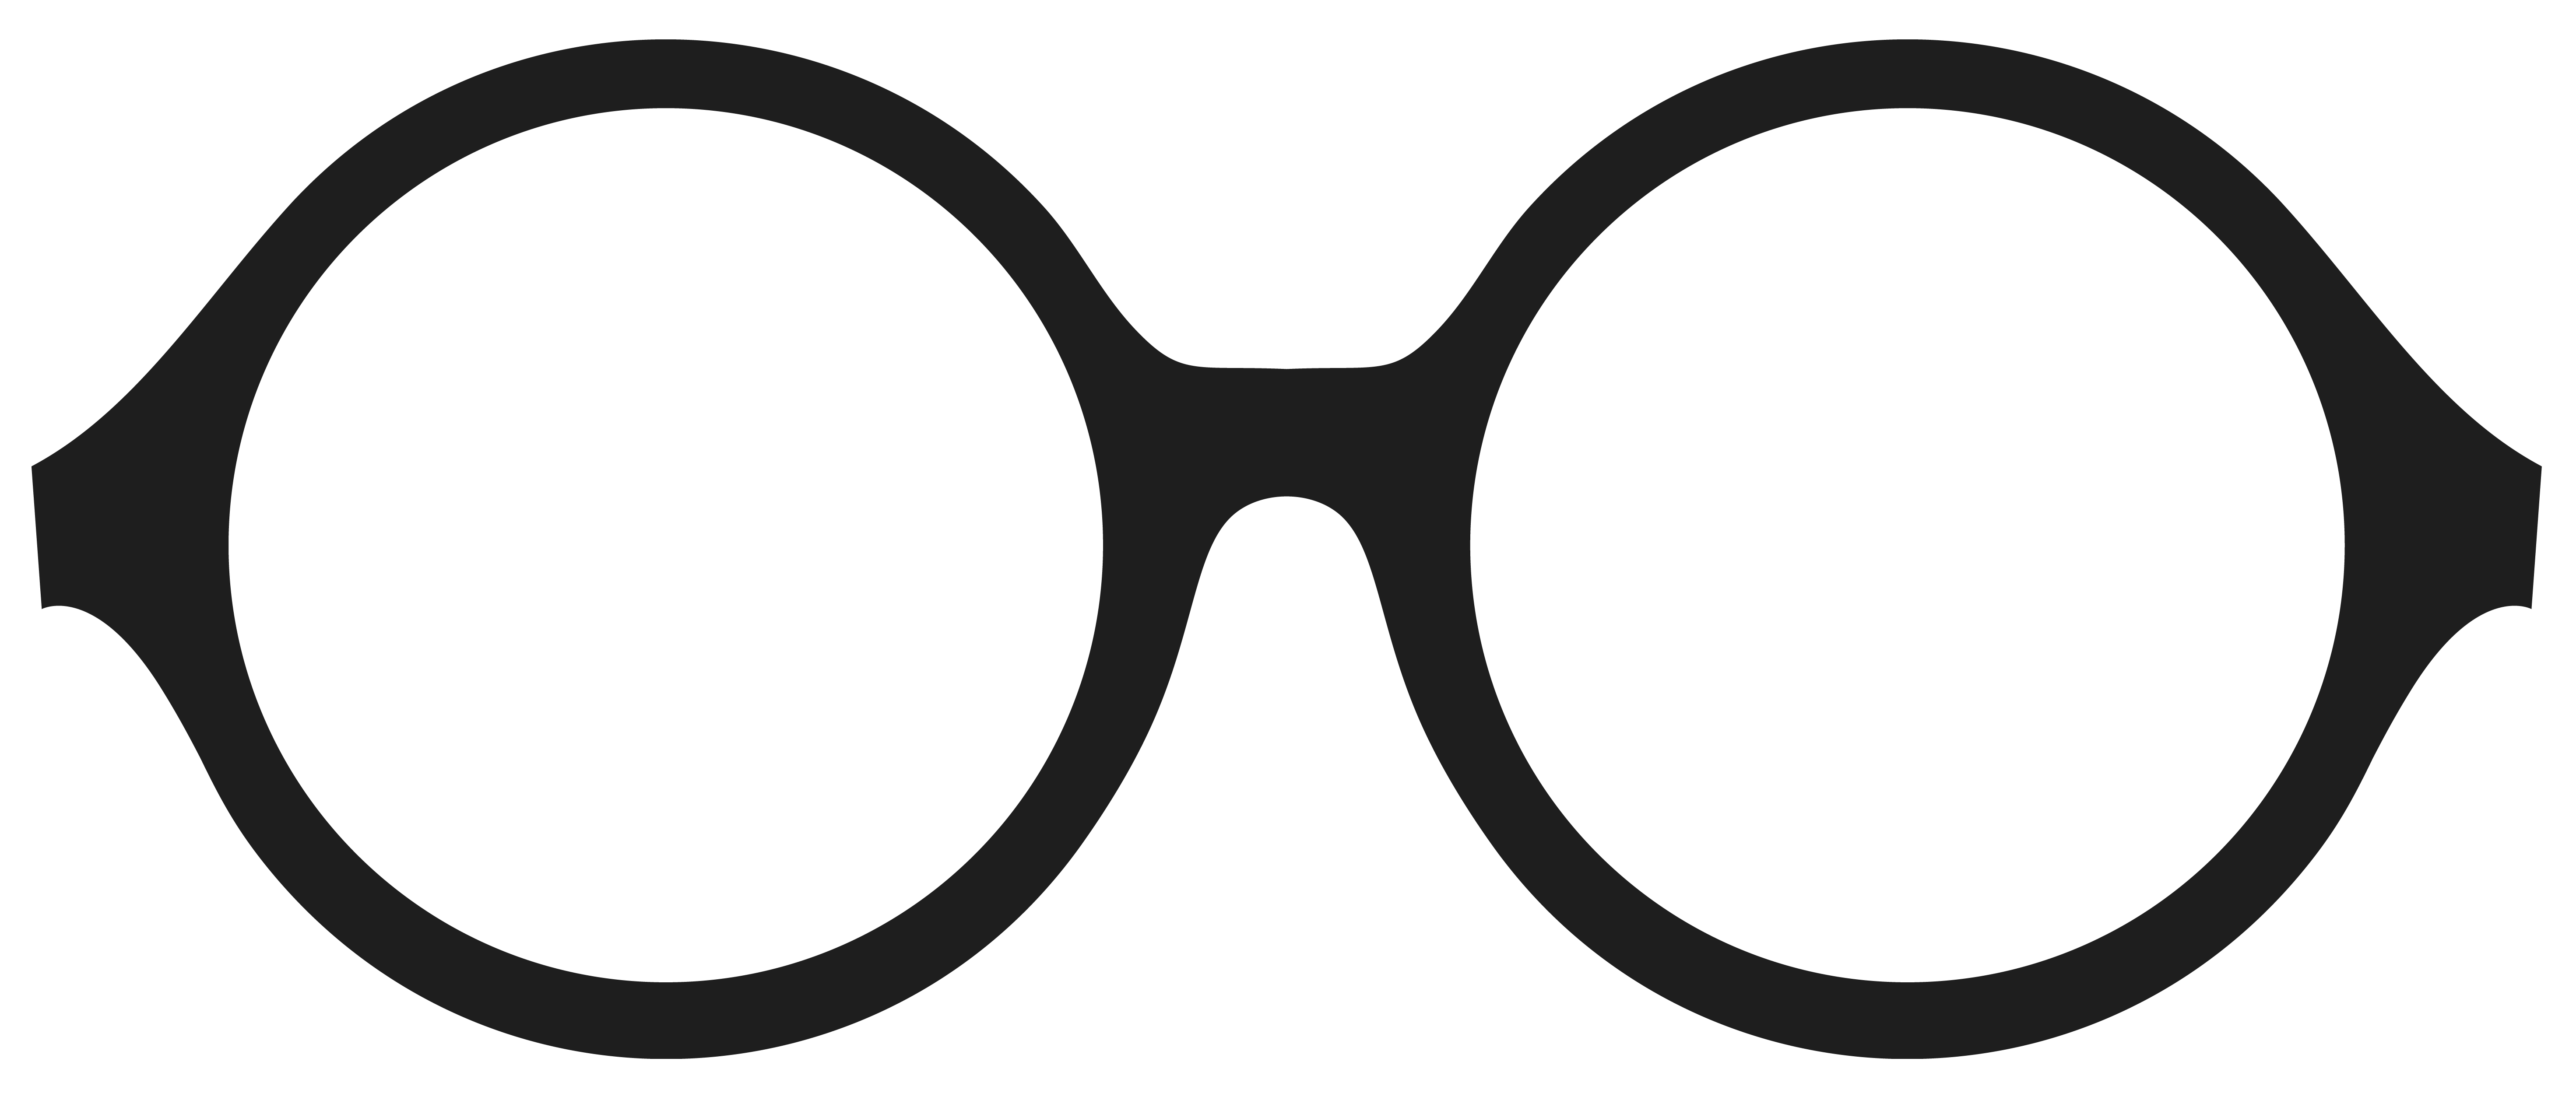 glasses png images are available download #10349